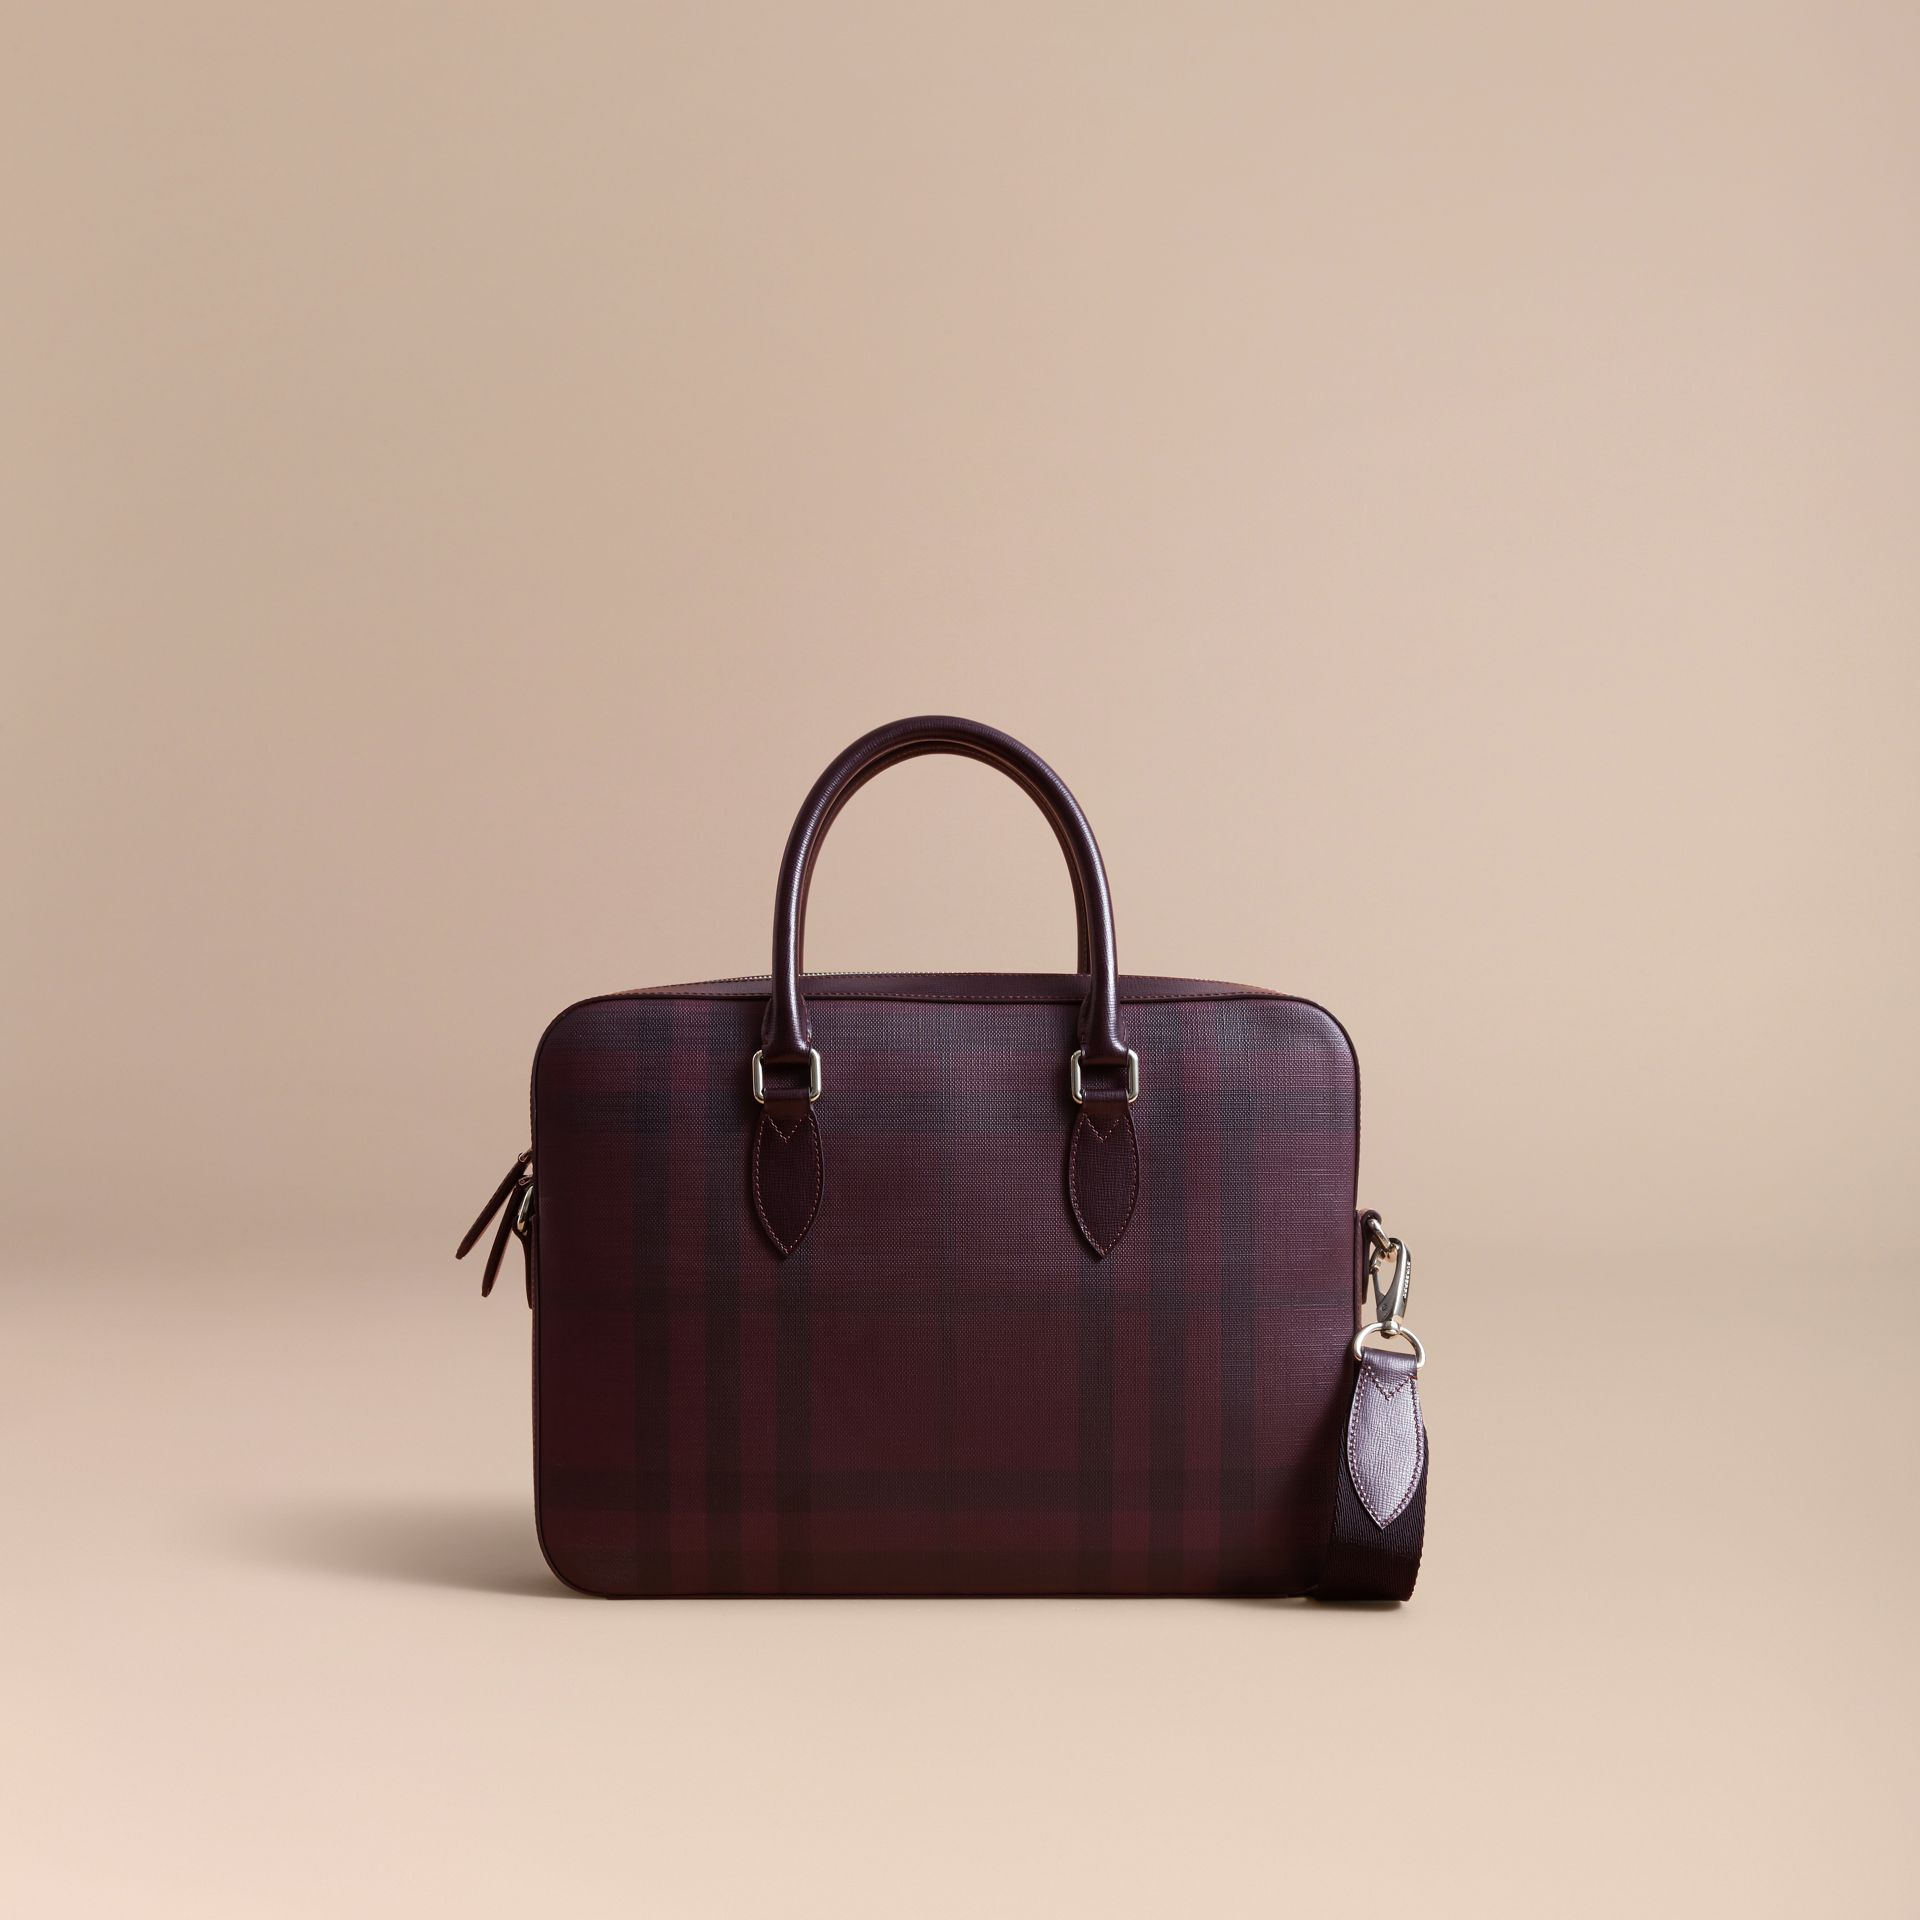 Medium Leather Trim London Check Briefcase in Deep Claret - Men | Burberry Singapore - gallery image 8